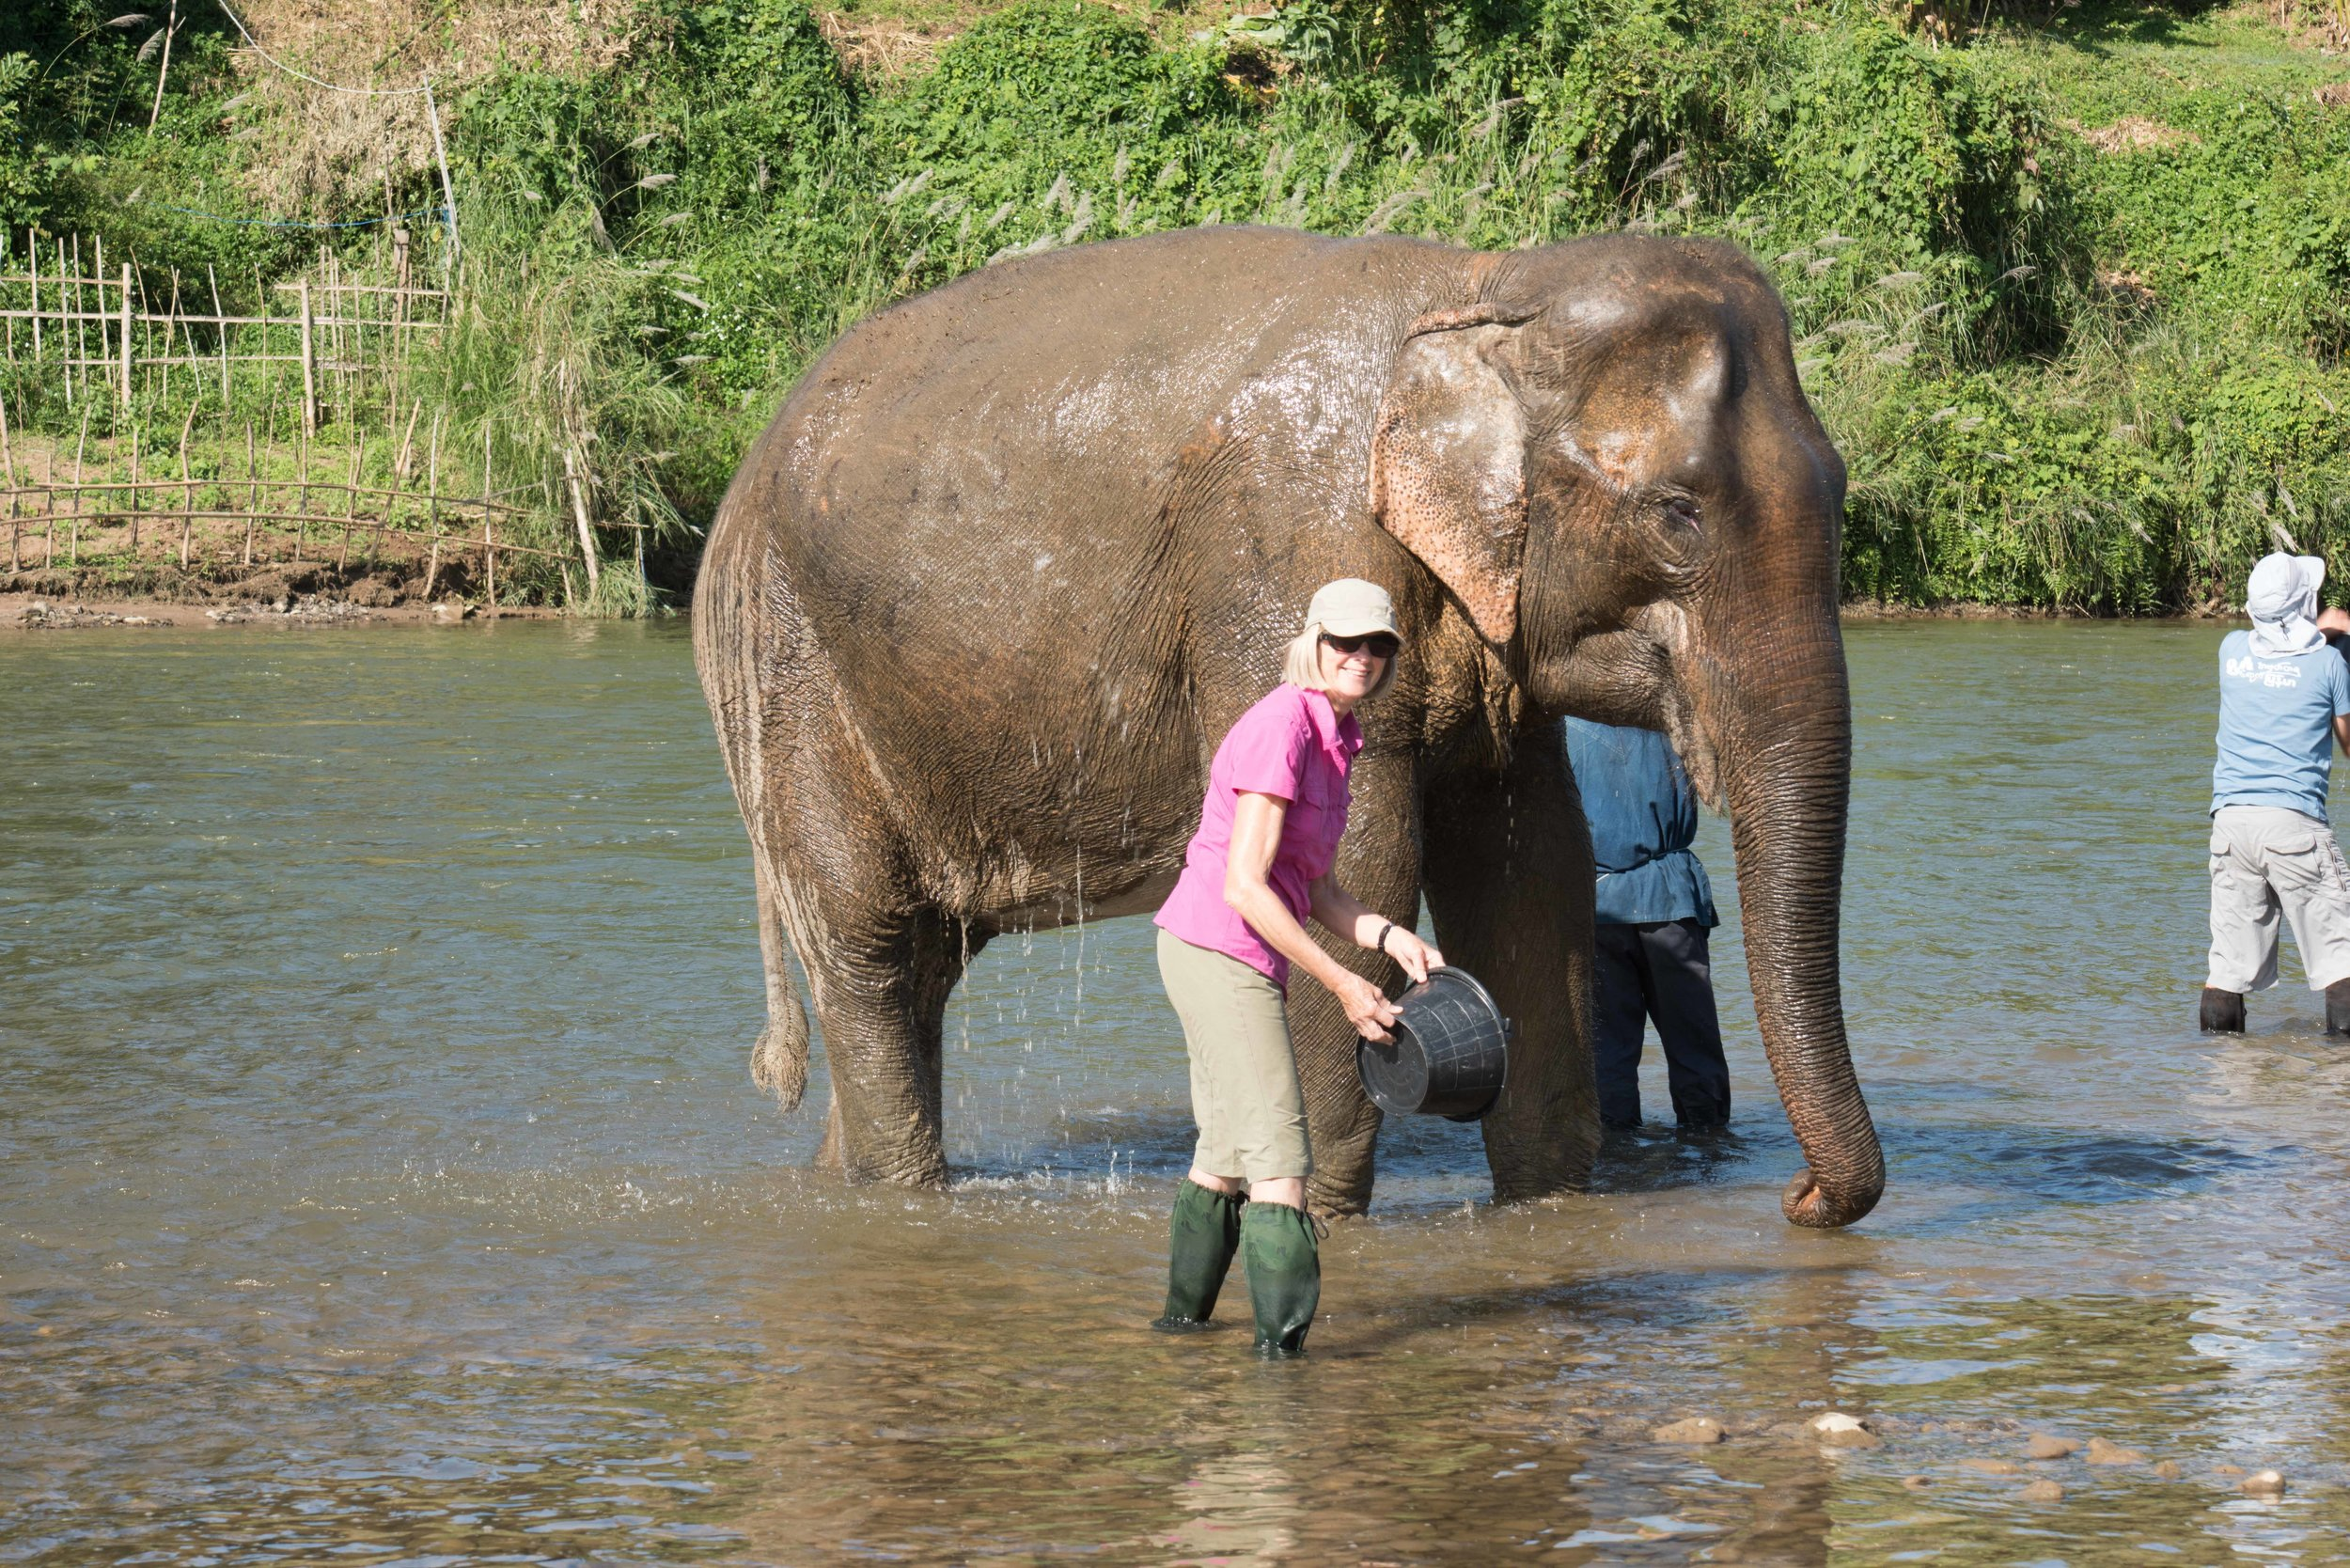 Corinne washing elephants, MandaLoa Elephant Conservation Park, Laos, 2 Dec 2017.jpg